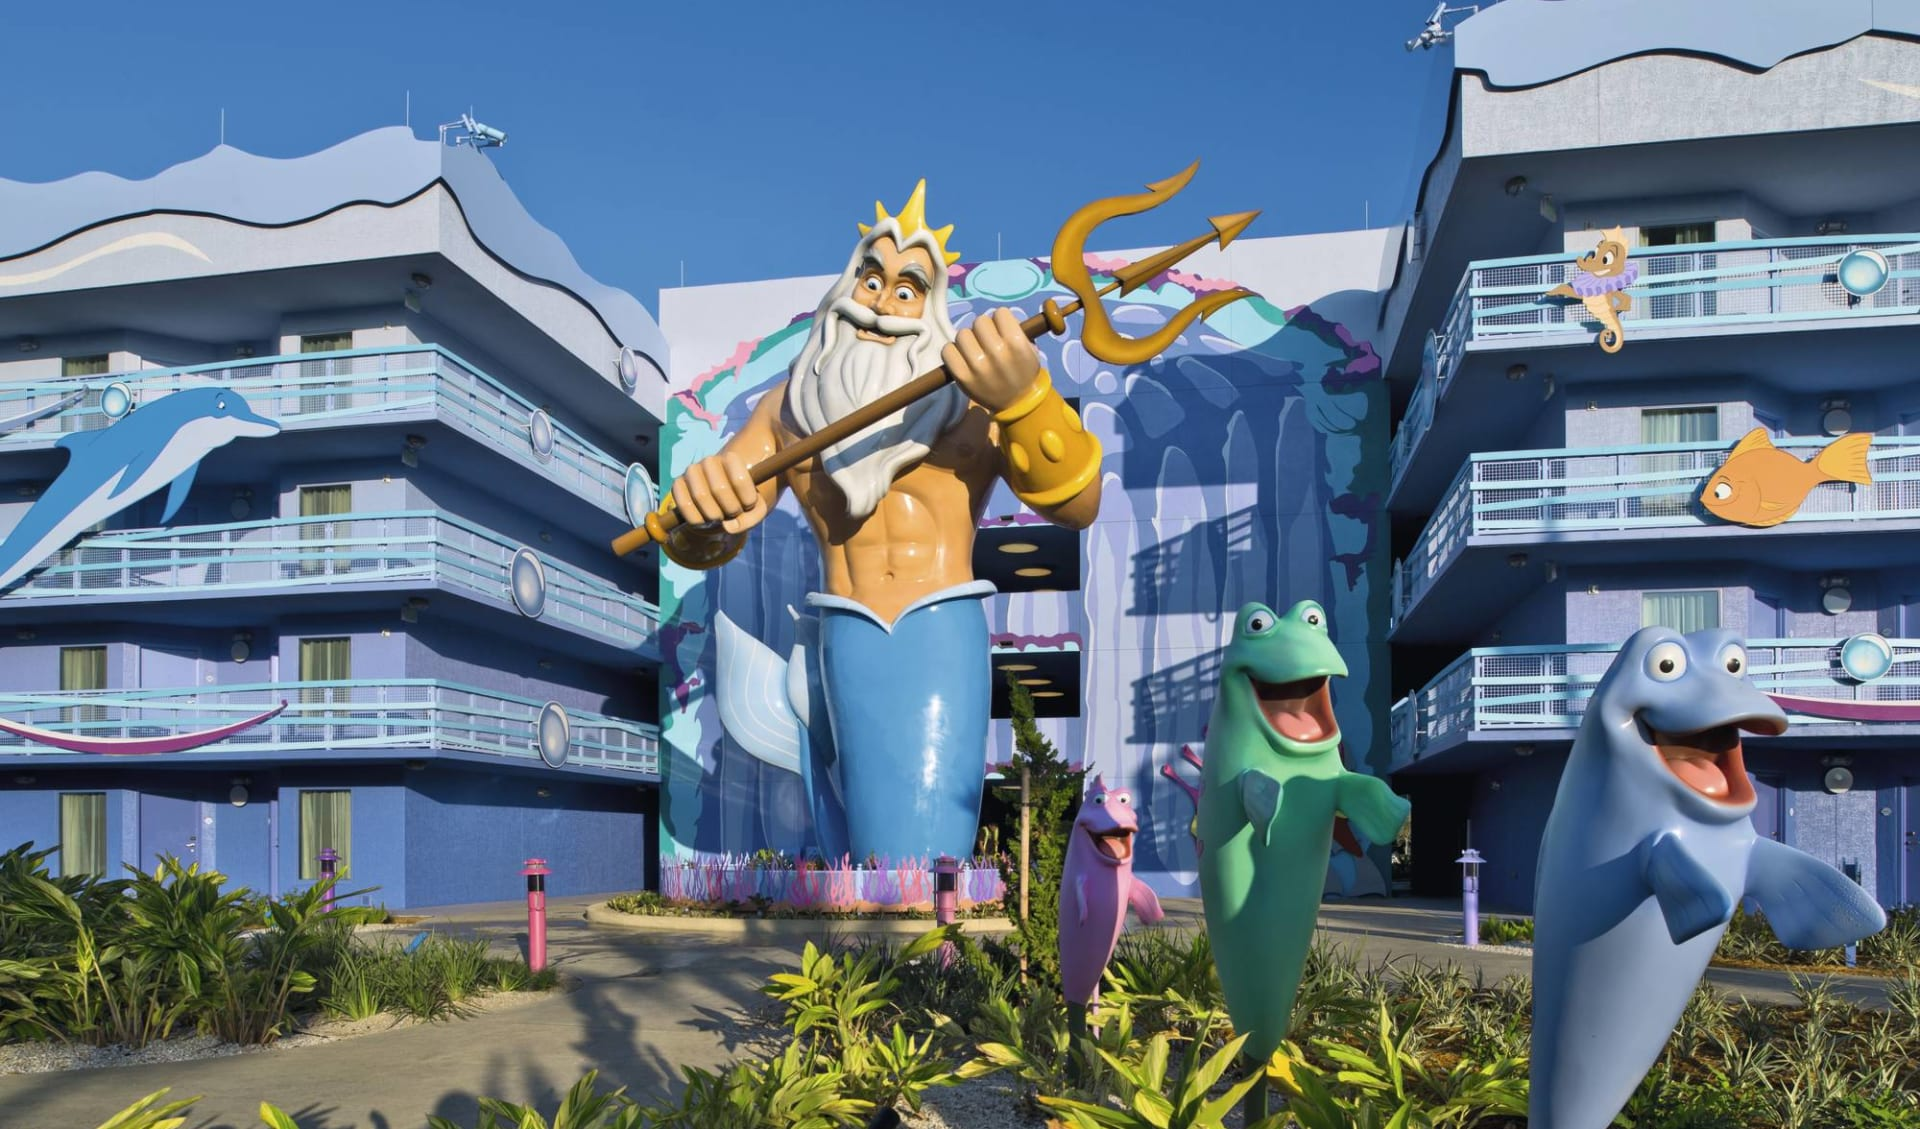 Disney's Art of Animation Resort in Lake Buena Vista: Exterior_Disney's Art of Animation_Aussenansicht_BON